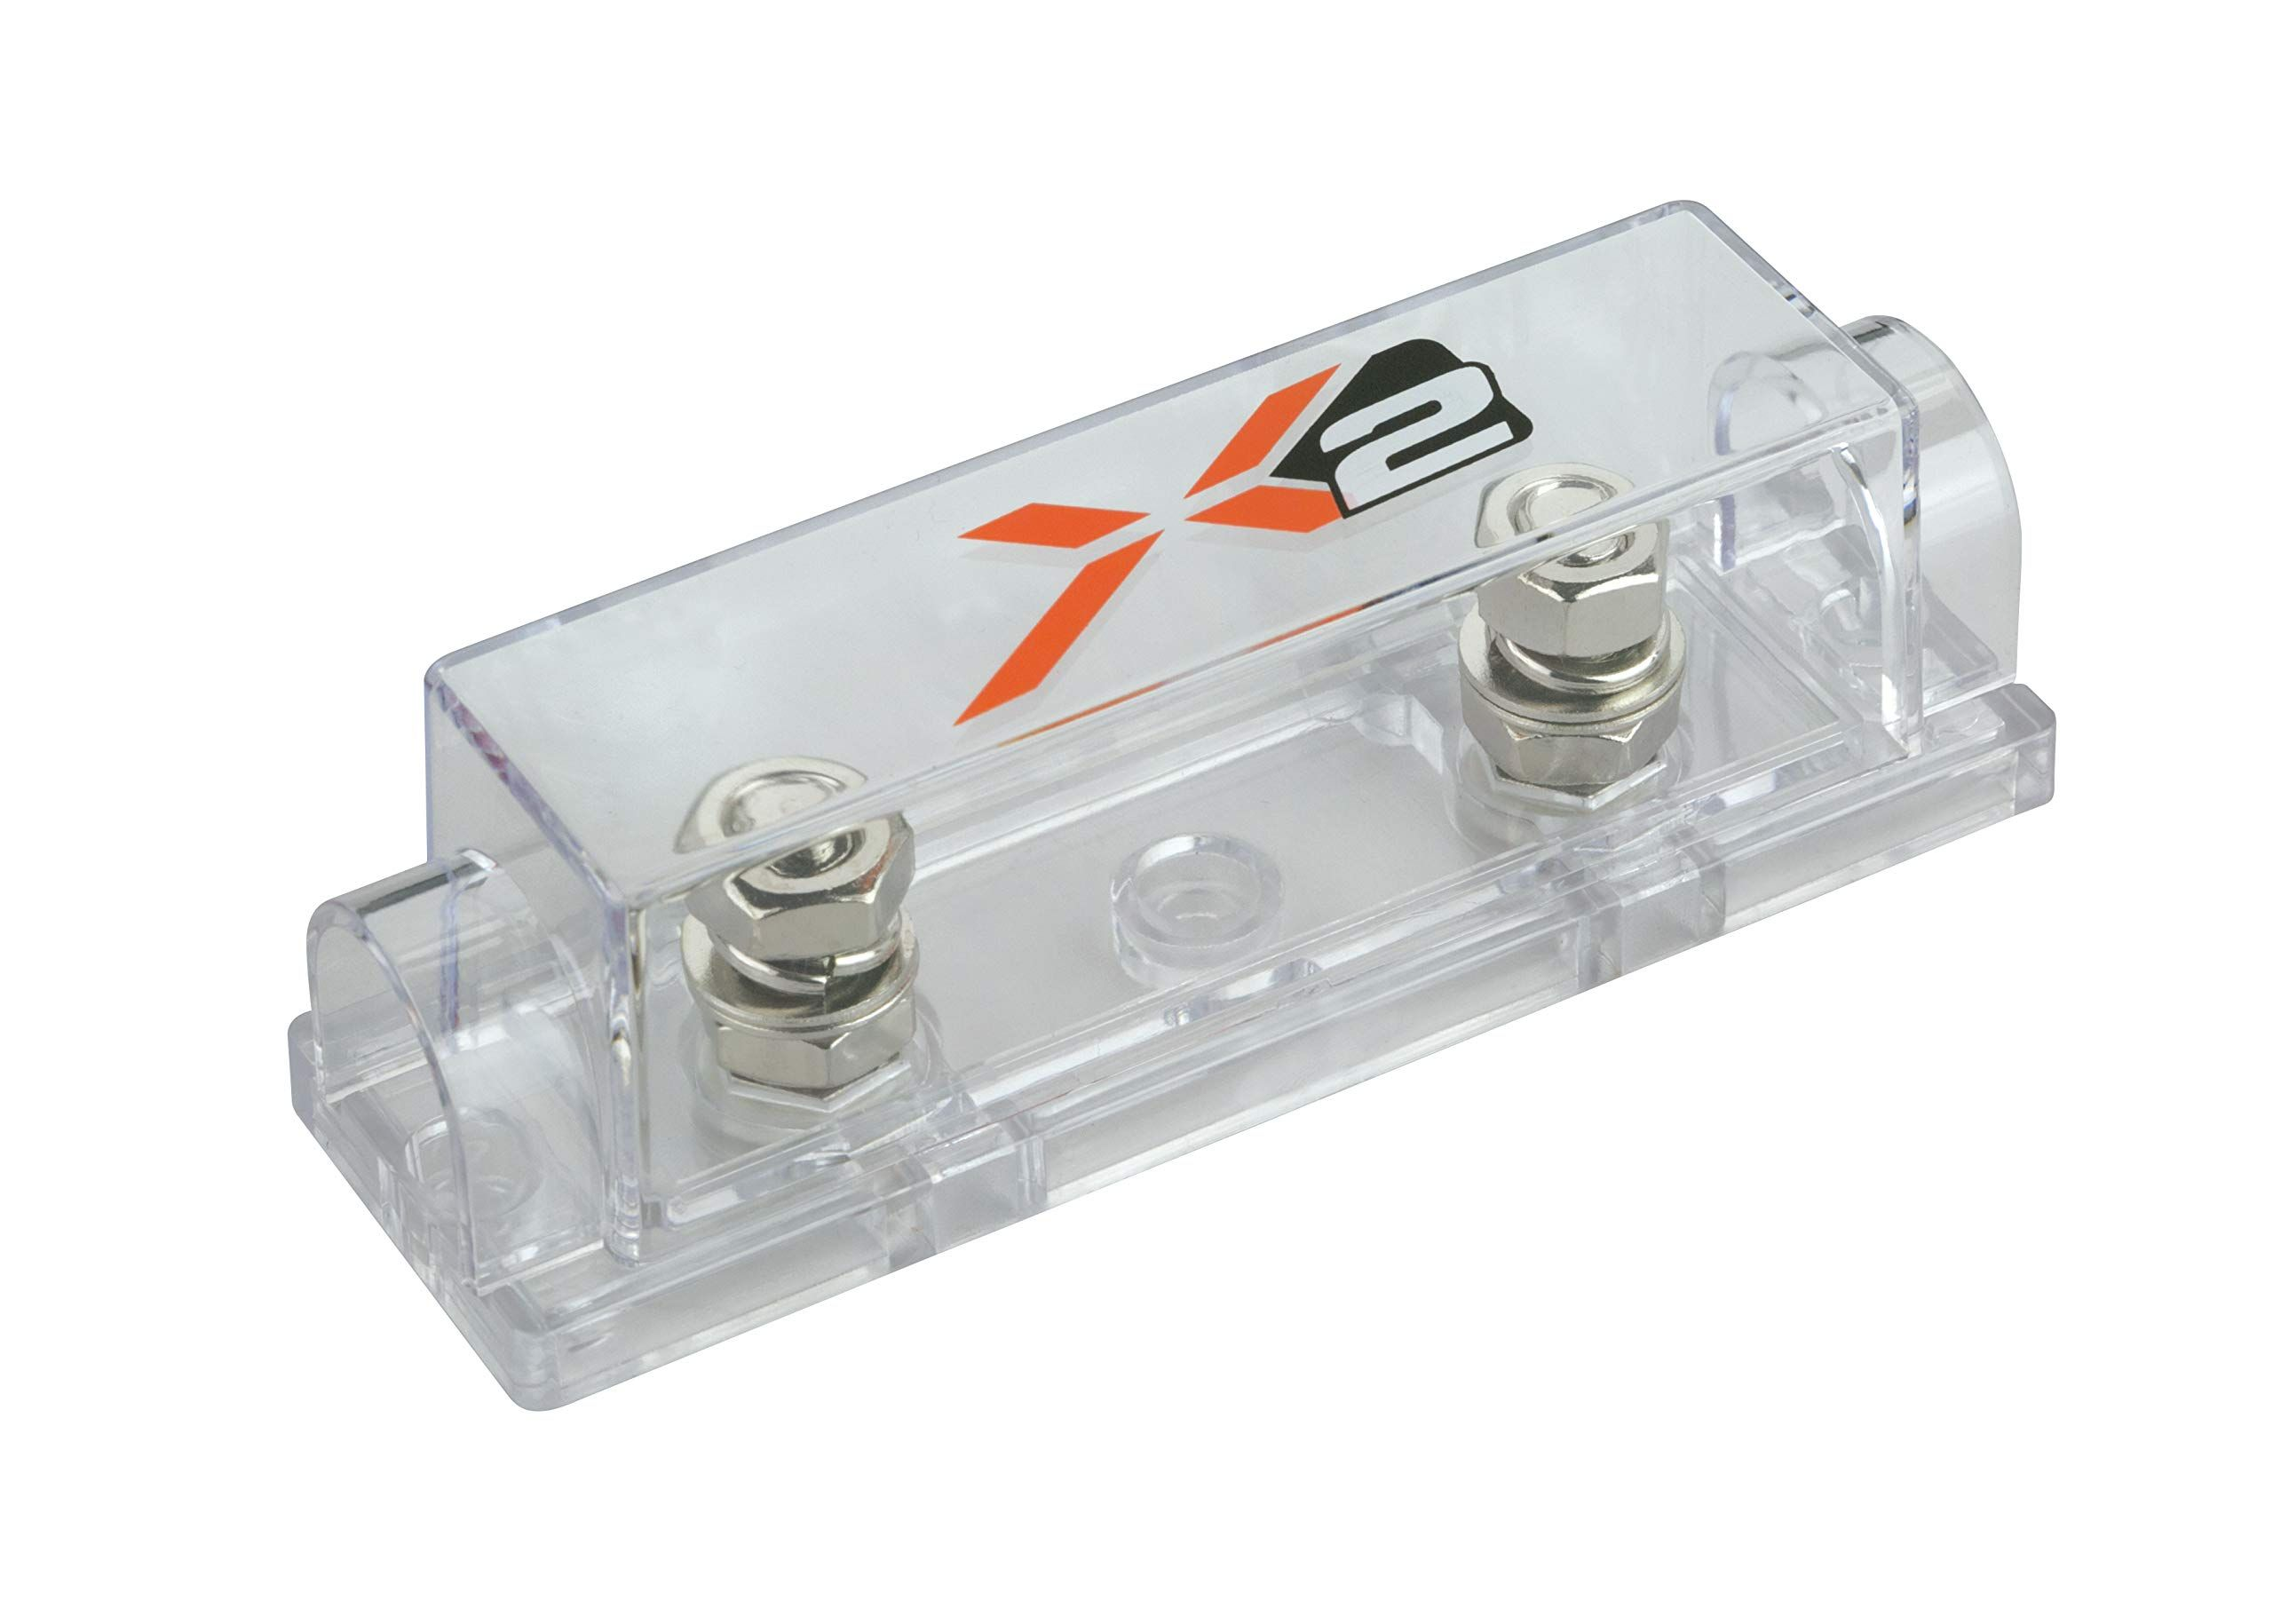 Scosche X2wfh Single Anl Fuse Holder Click Image For More Details This Is An Affiliate Link In 2020 Fuses Holder Breakers